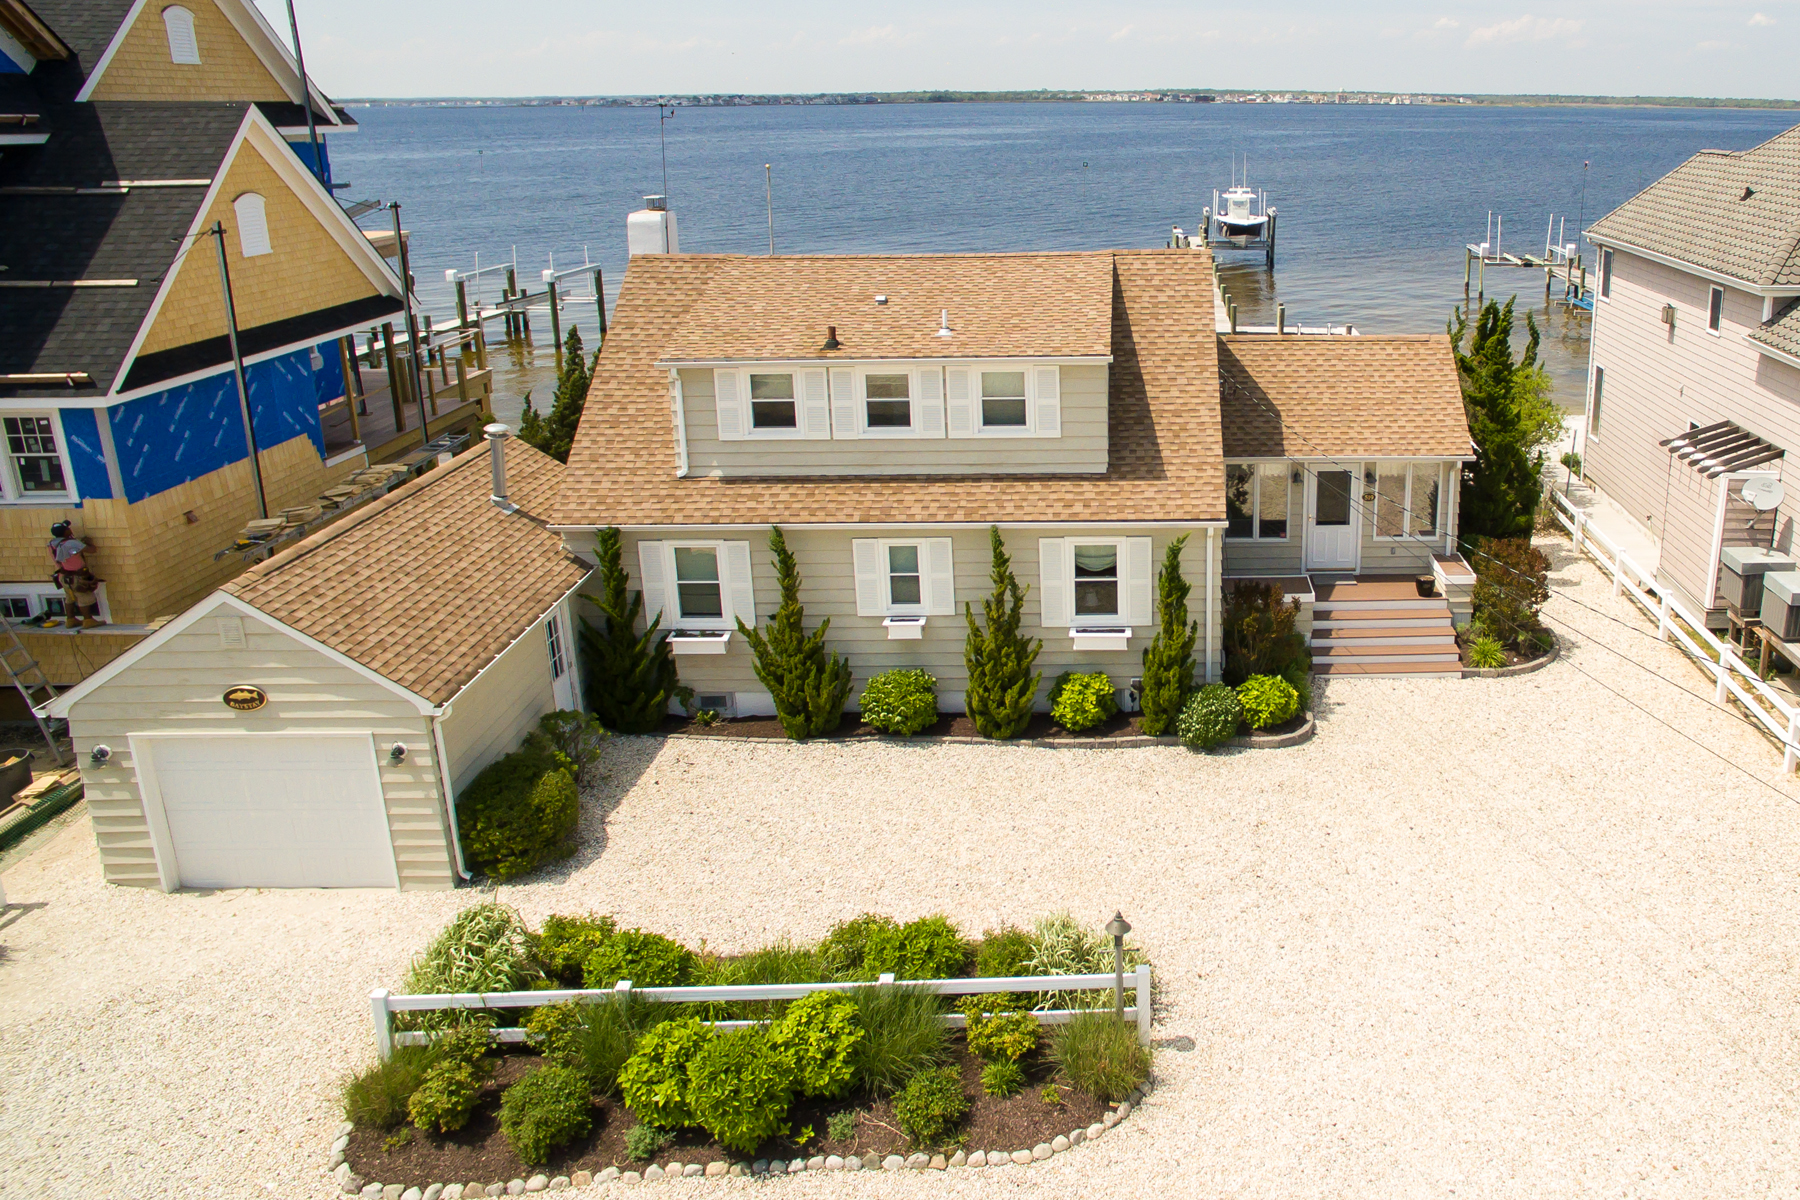 Single Family Home for Sale at Recently Updated Cape-Style Bayfront Home 519 Normandy Drive Normandy Beach, New Jersey 08739 United States